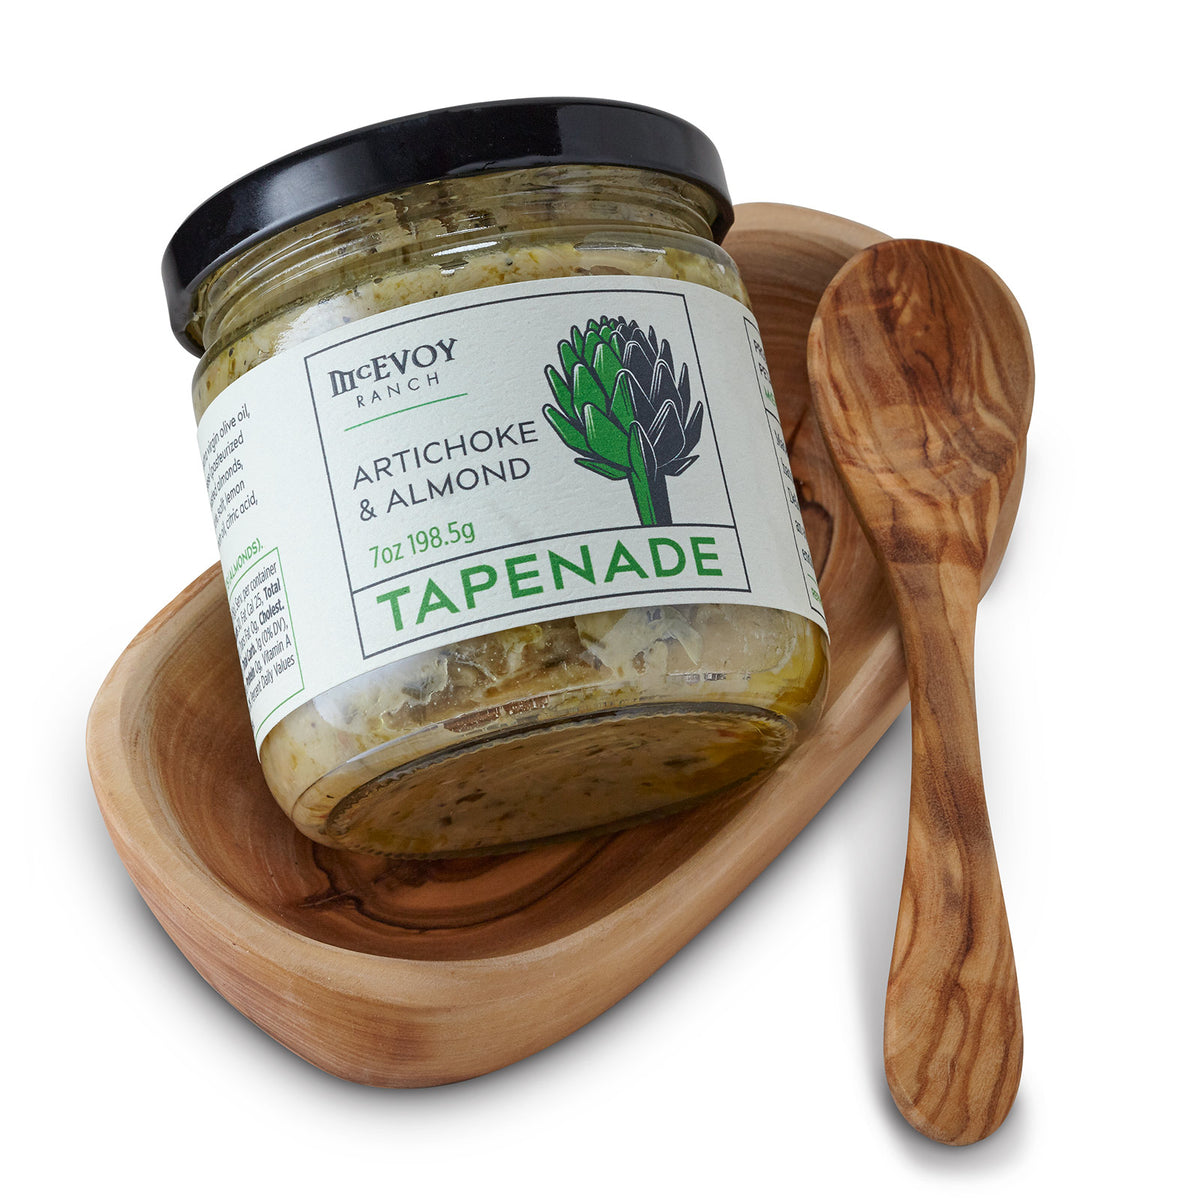 Tapenade Artichoke & Almond Condiment Set